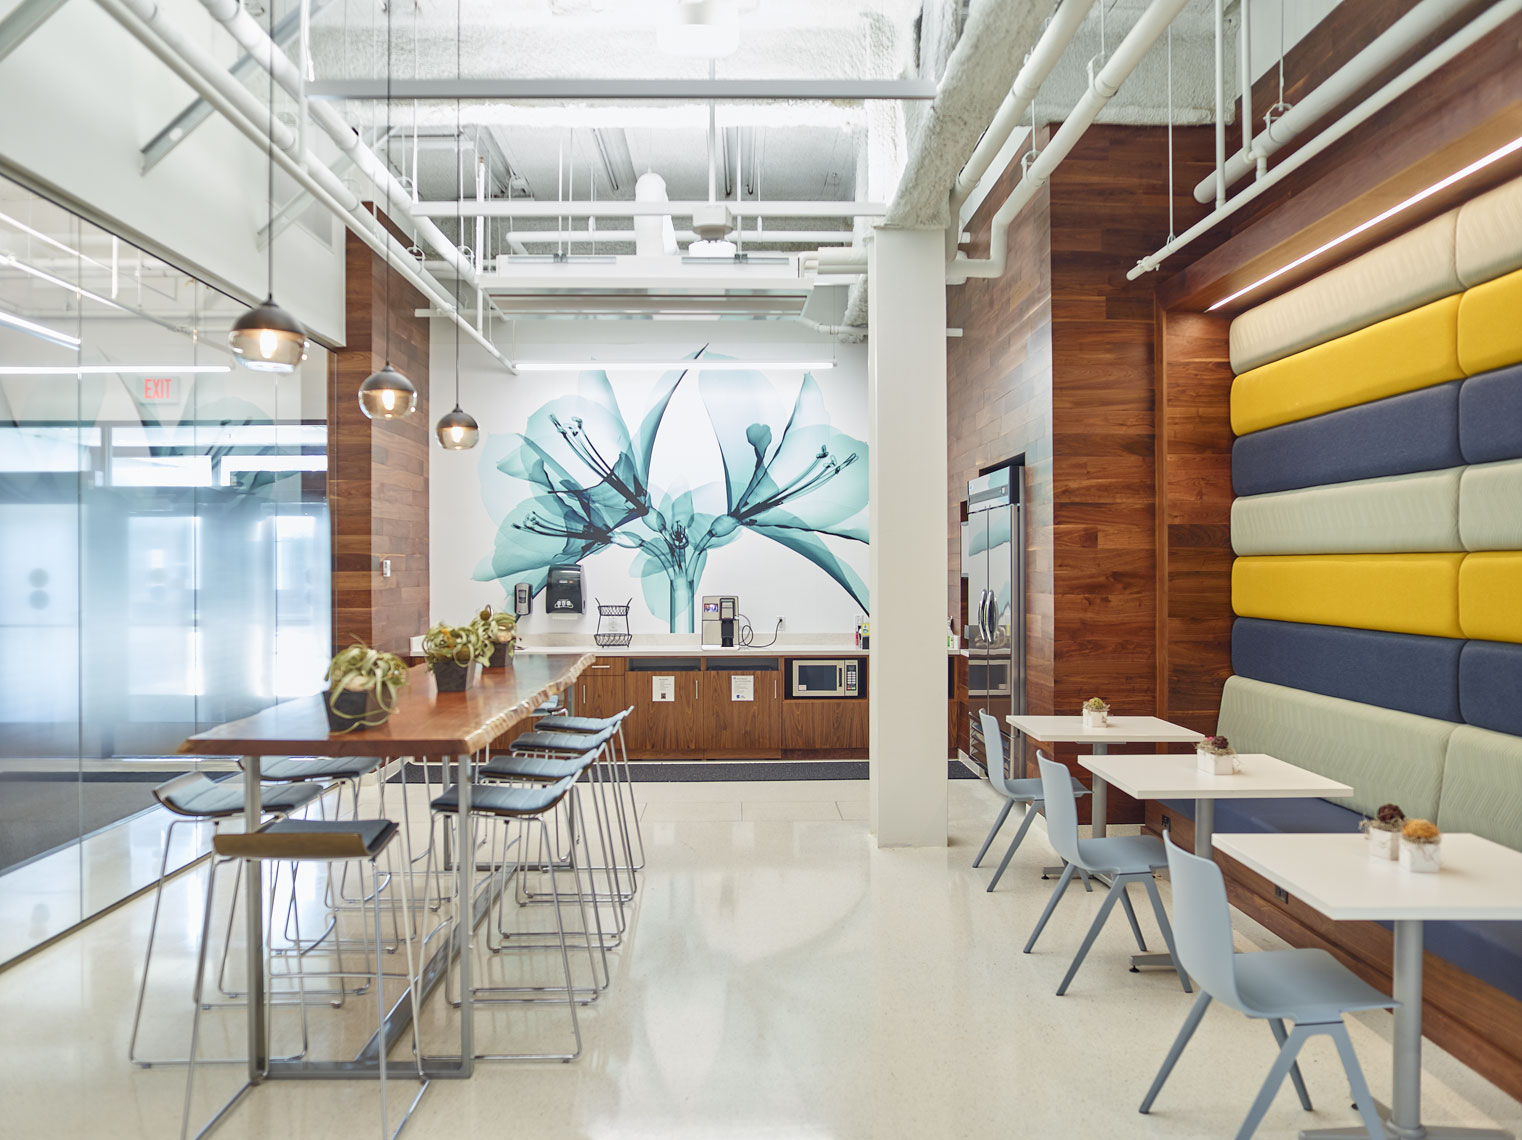 3M/office kitchen/architectural photograph